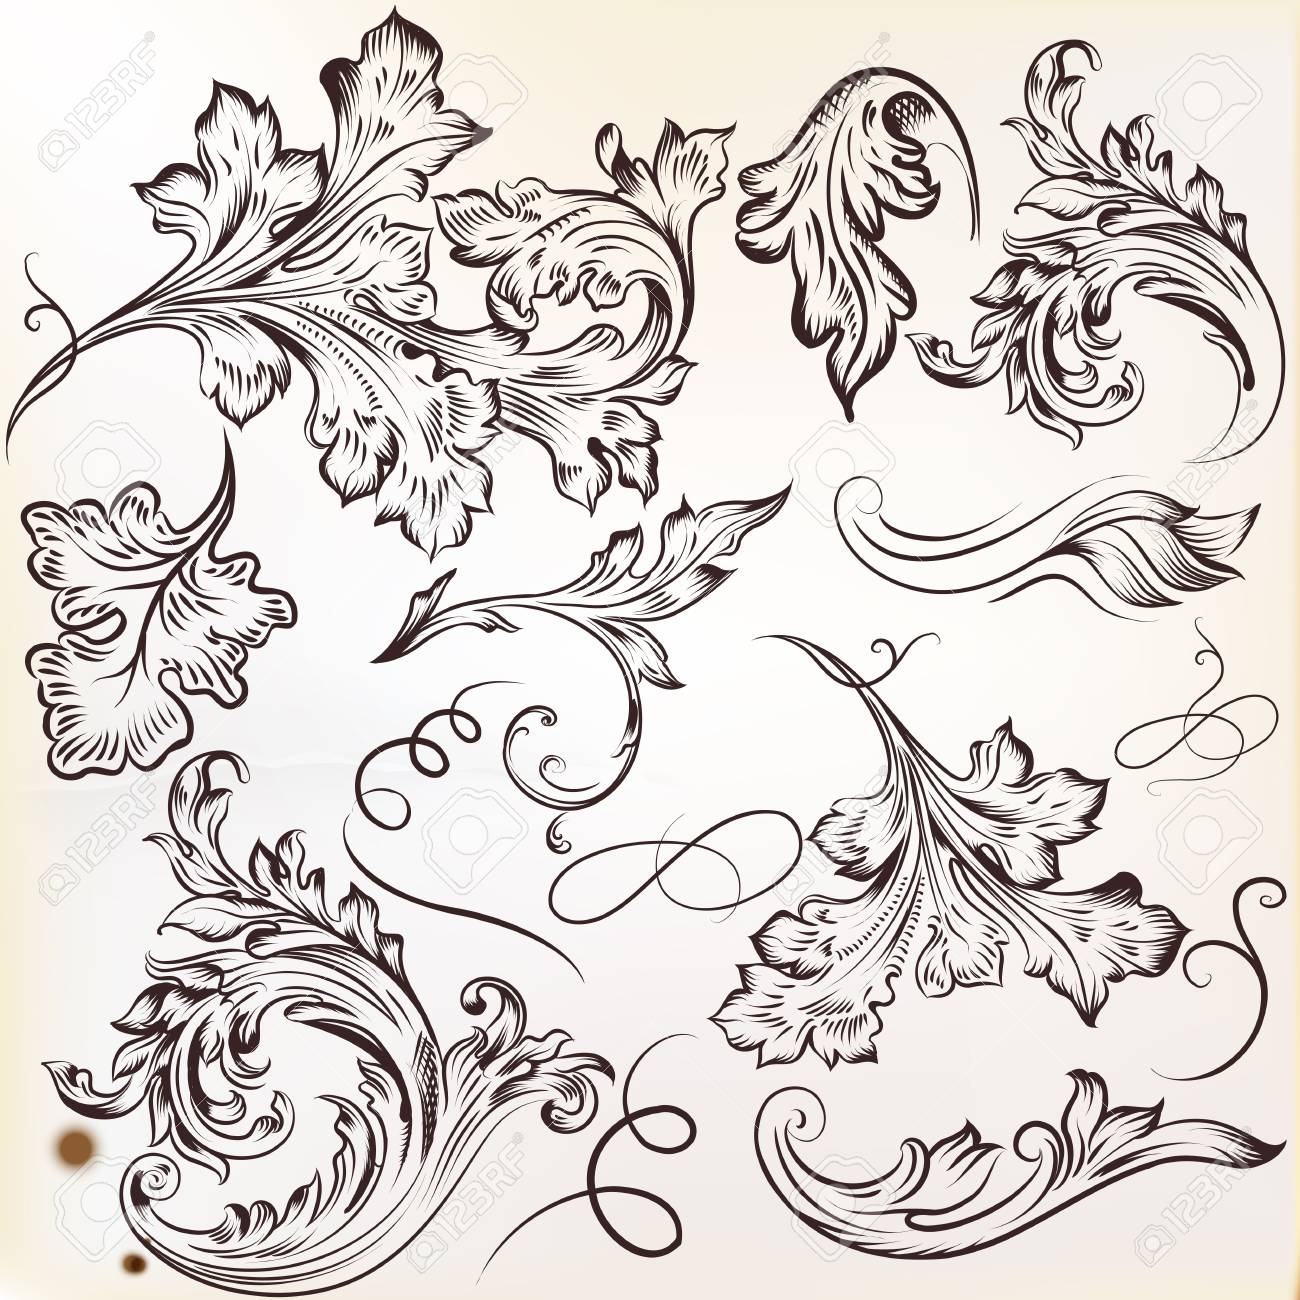 Vector set of calligraphic elements for design  Calligraphic vector Stock Vector - 20458806